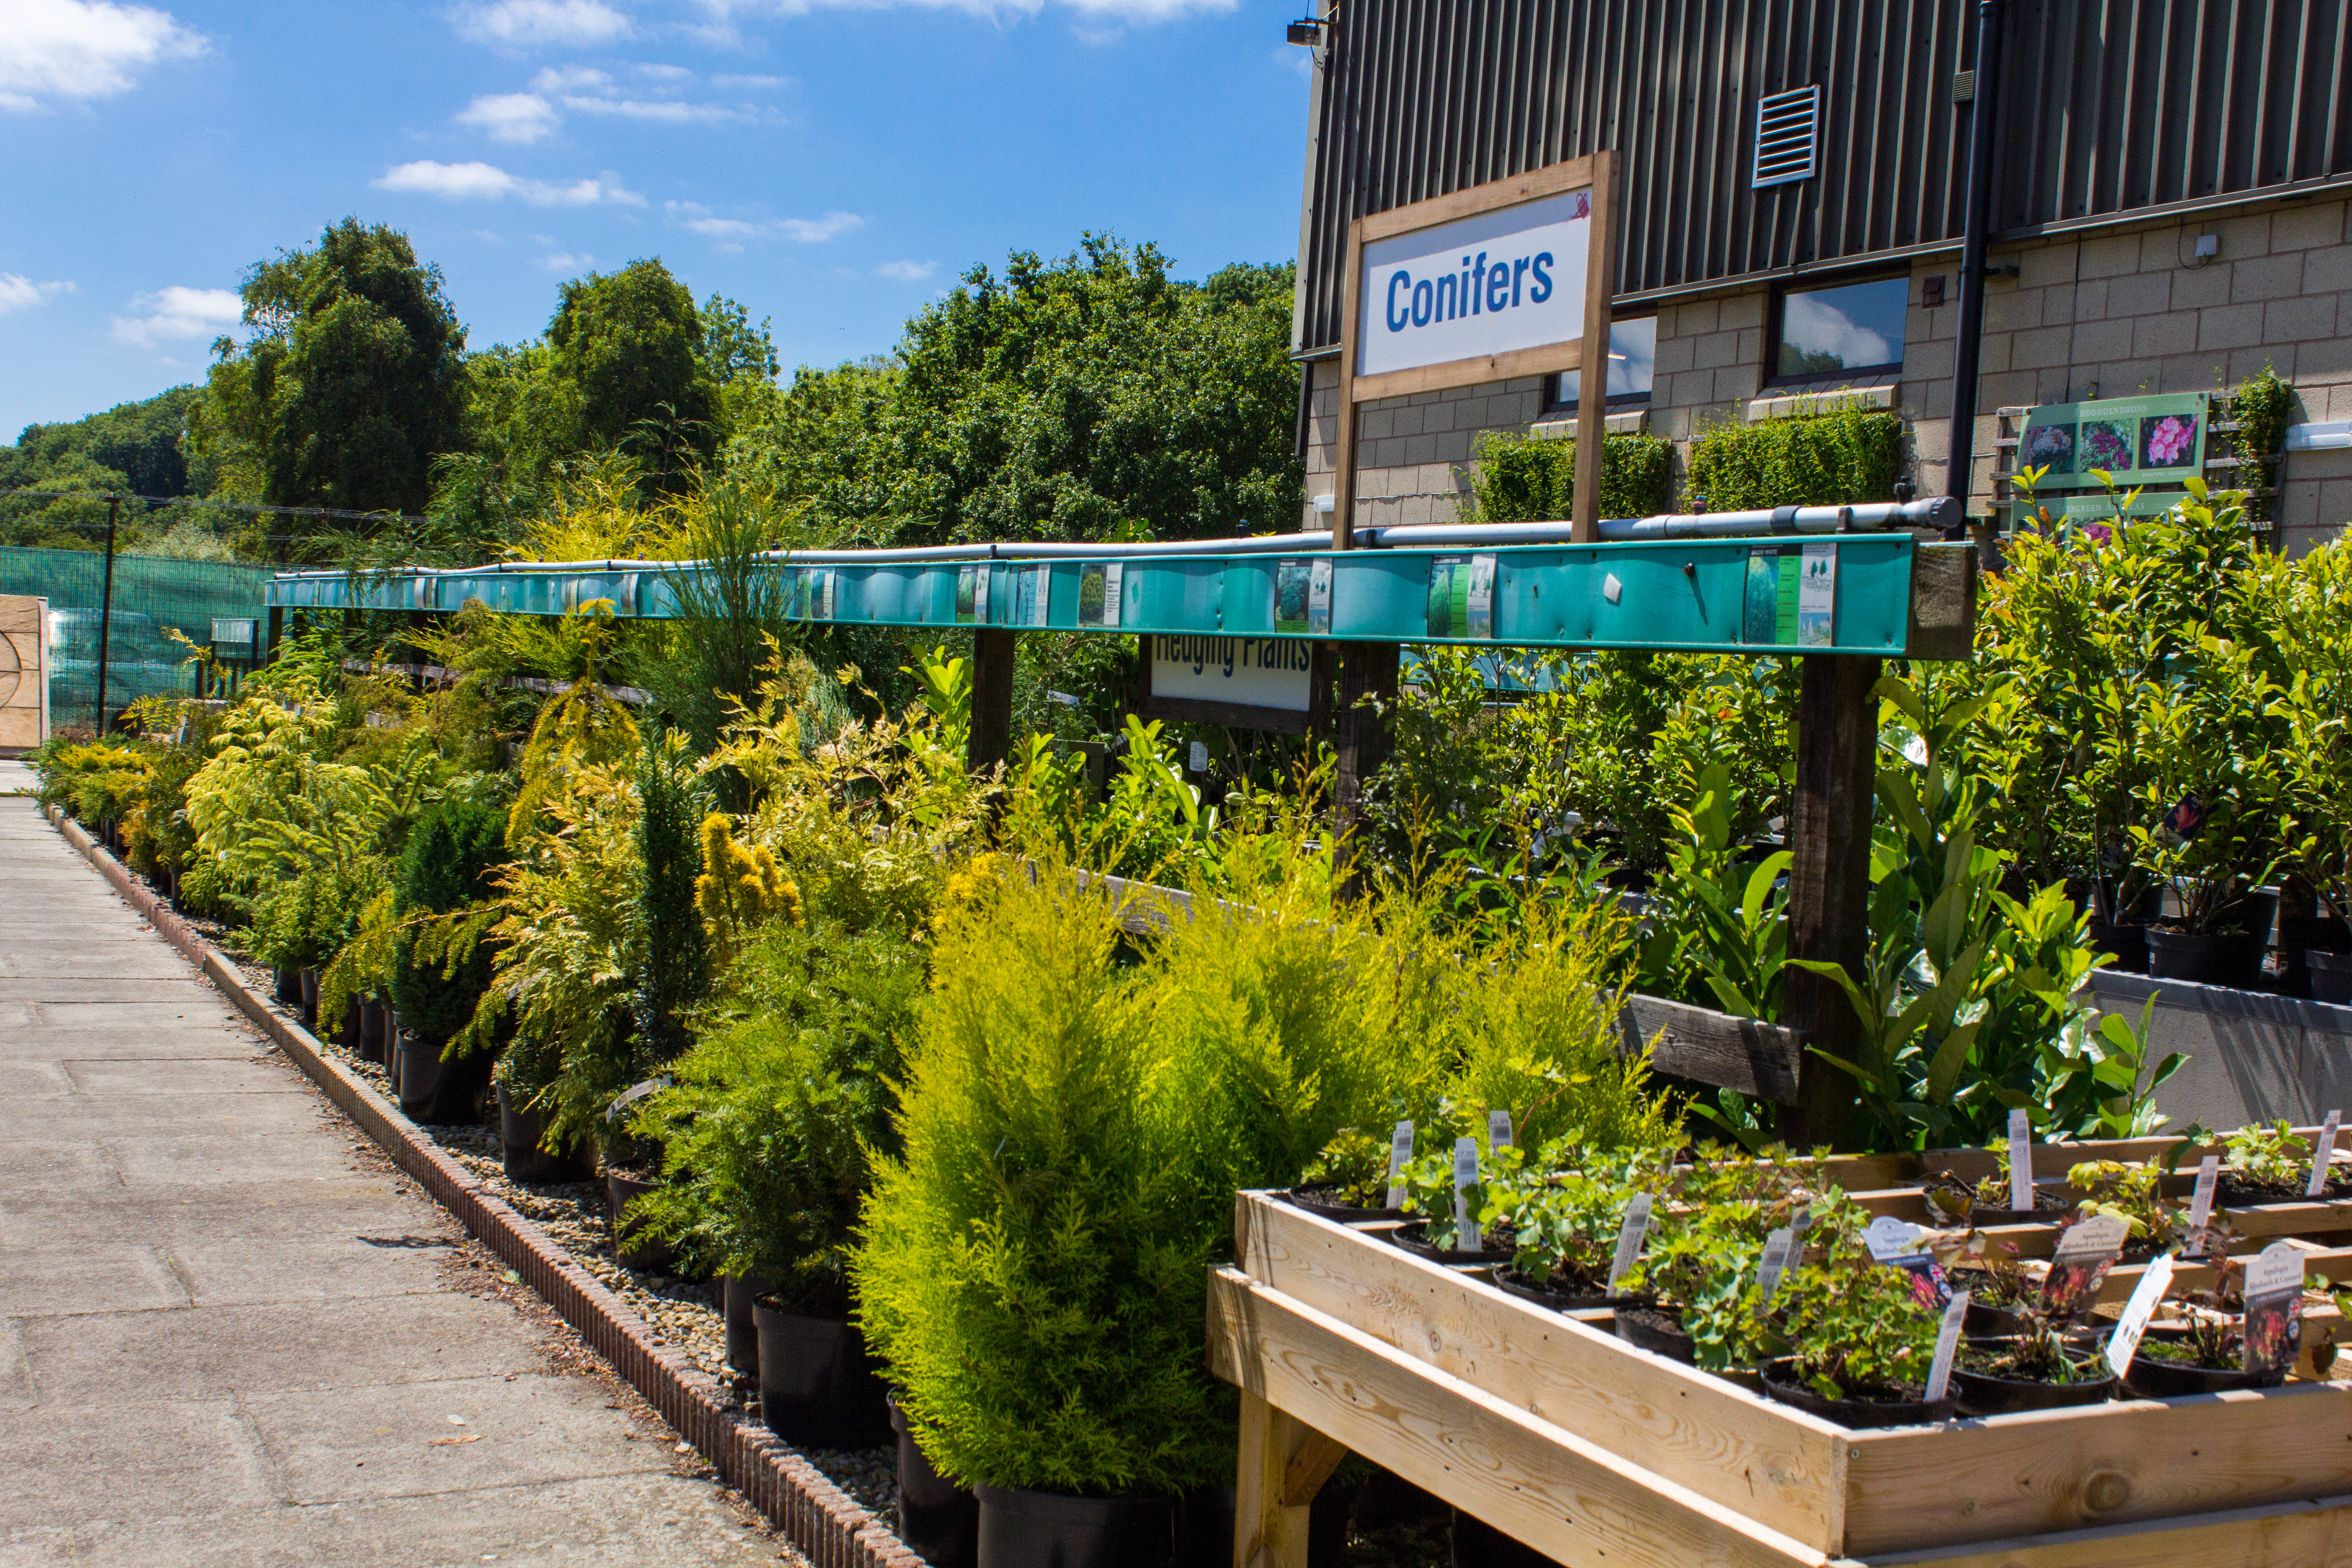 Garden Outdoor Plants for Sale at Dean's Garden Centre in York